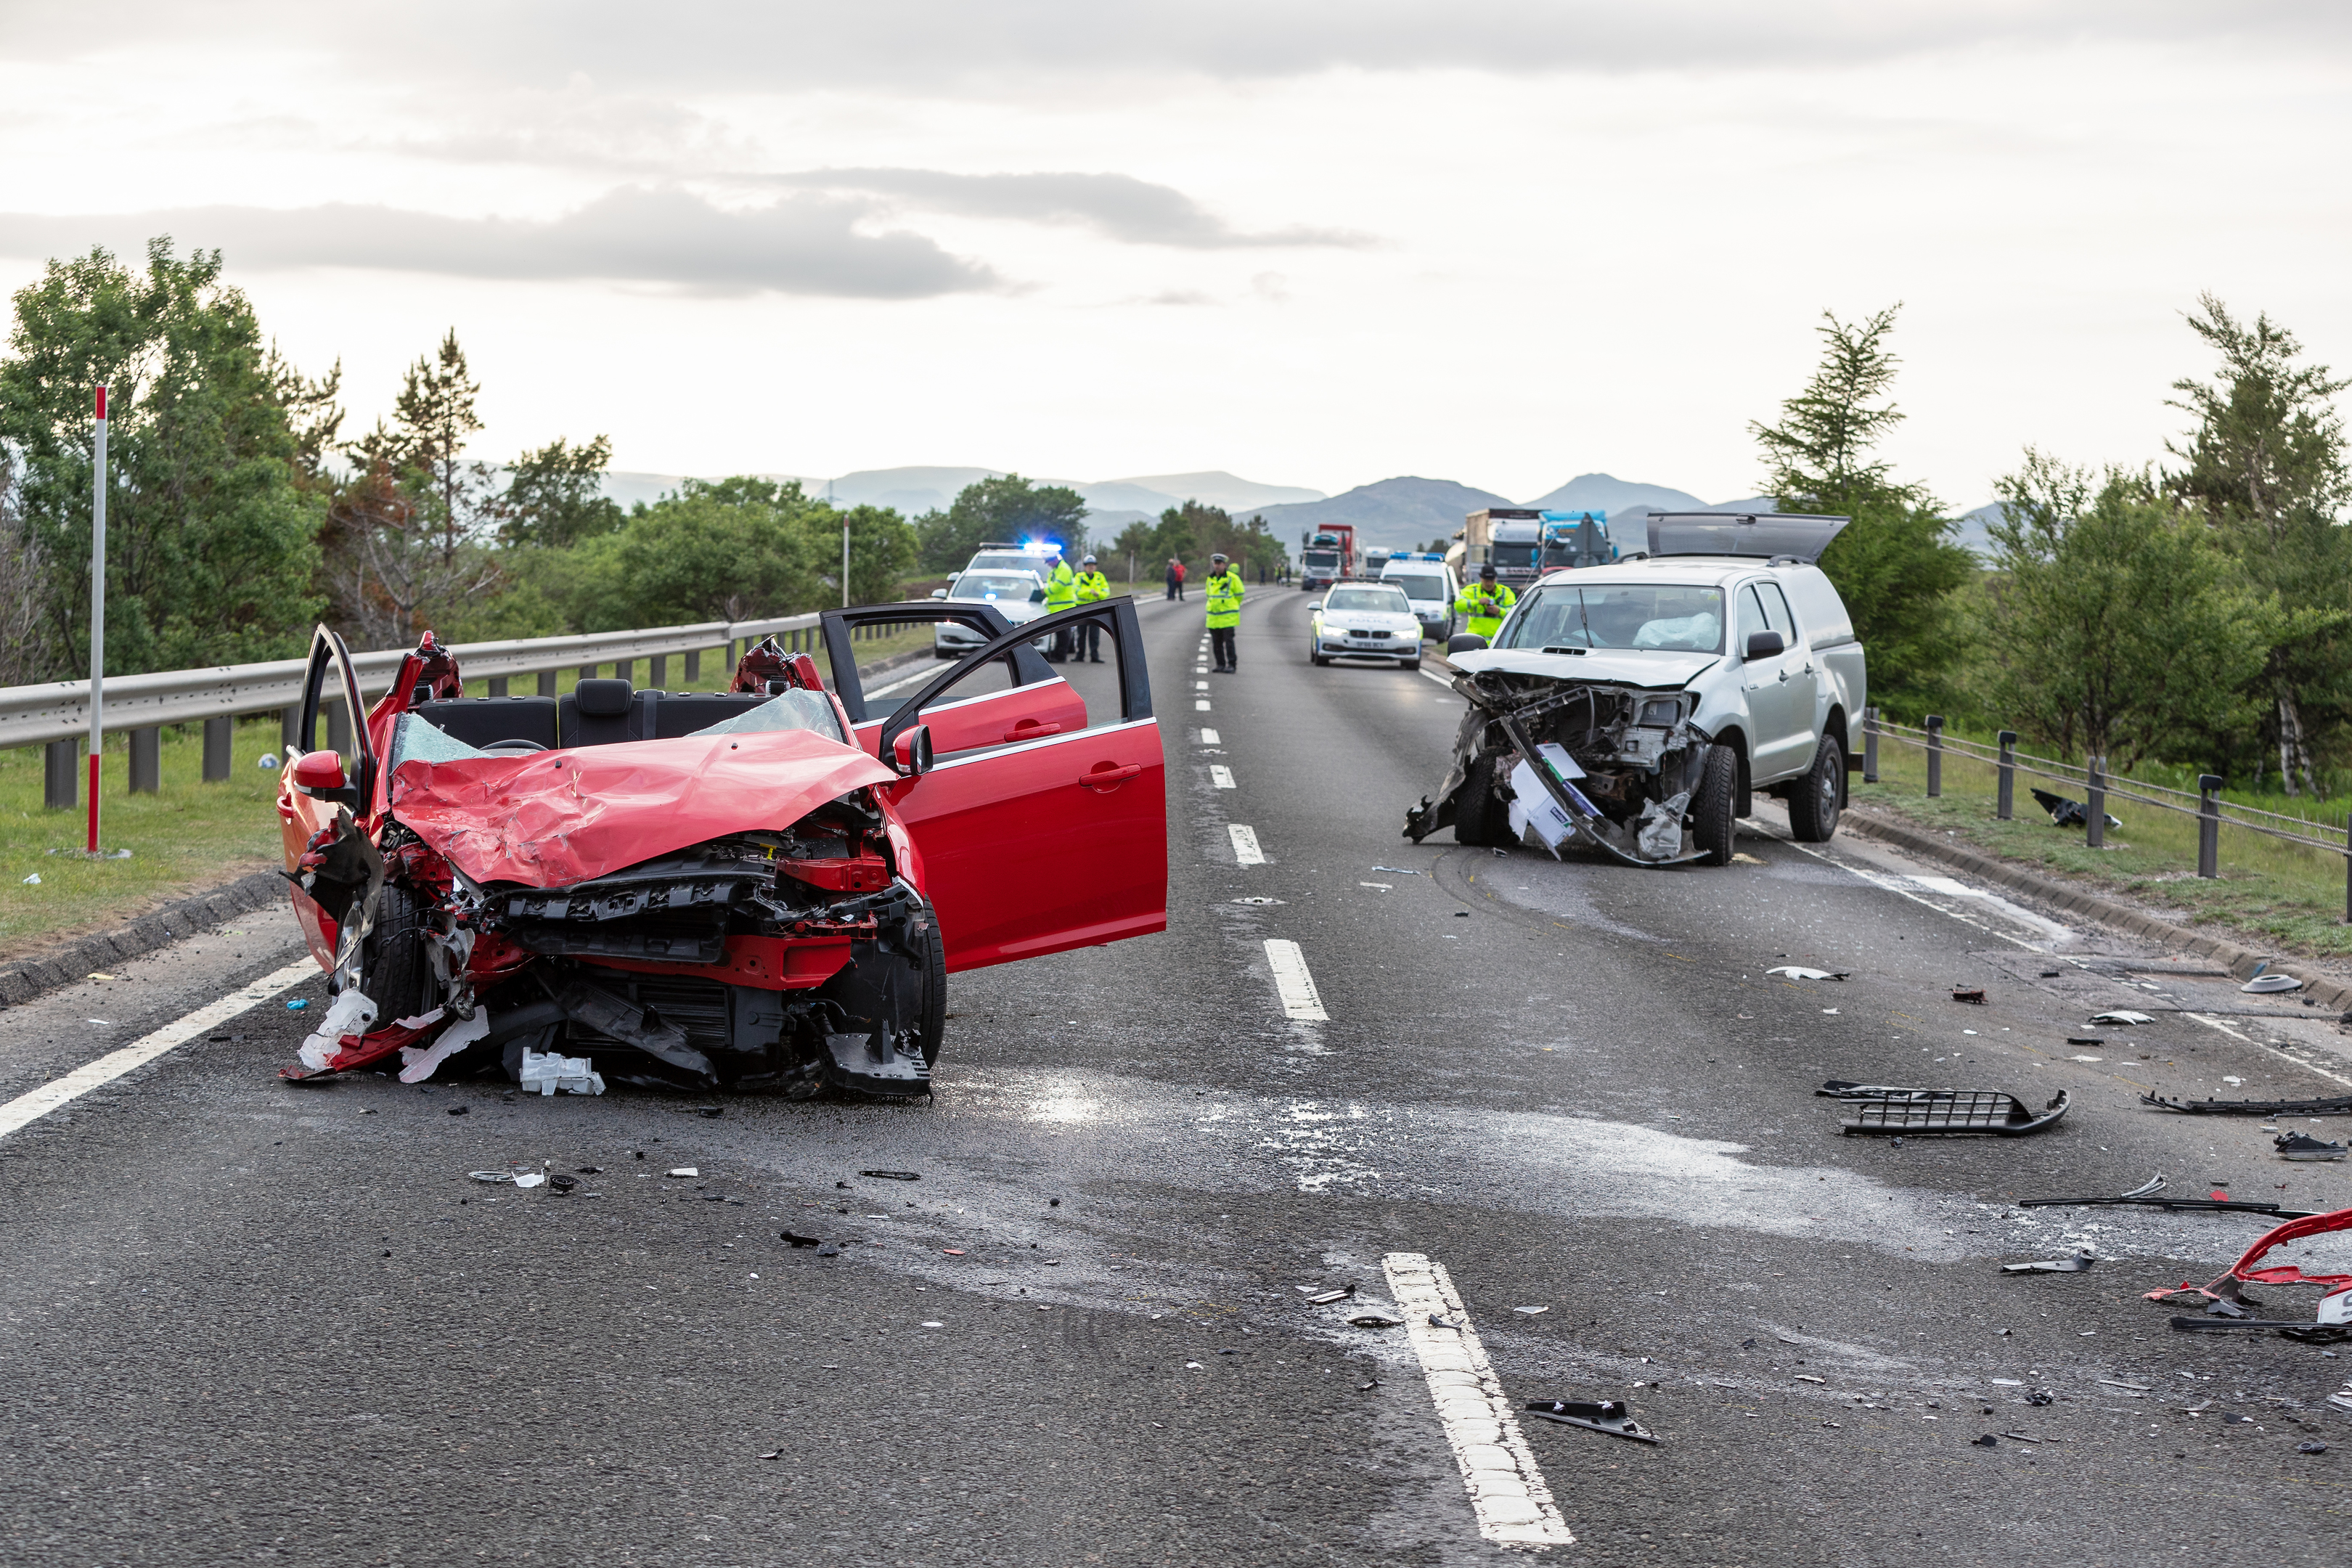 The scene of the crash on the A9 on Friday.